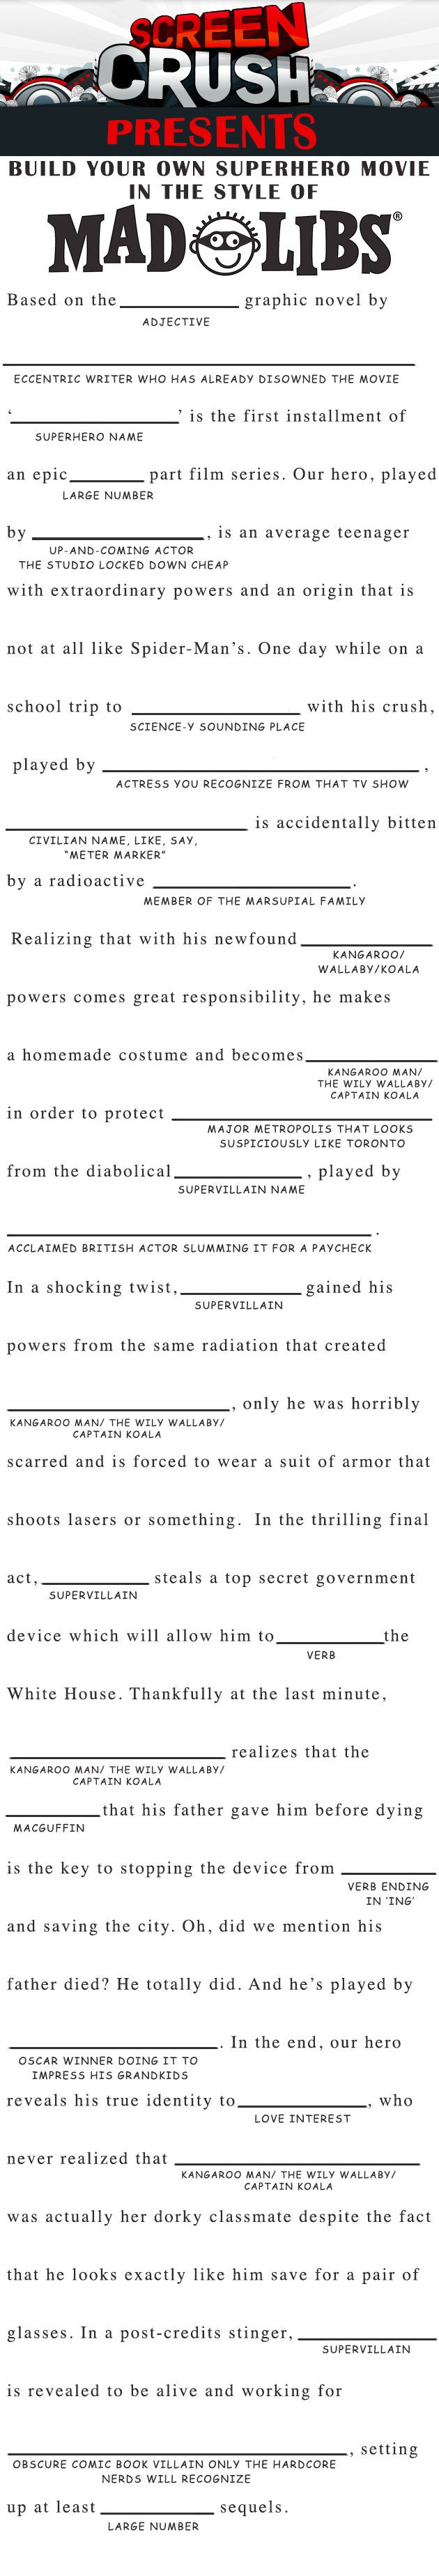 Make Your Own Superhero Movie, Mad Libs-Style